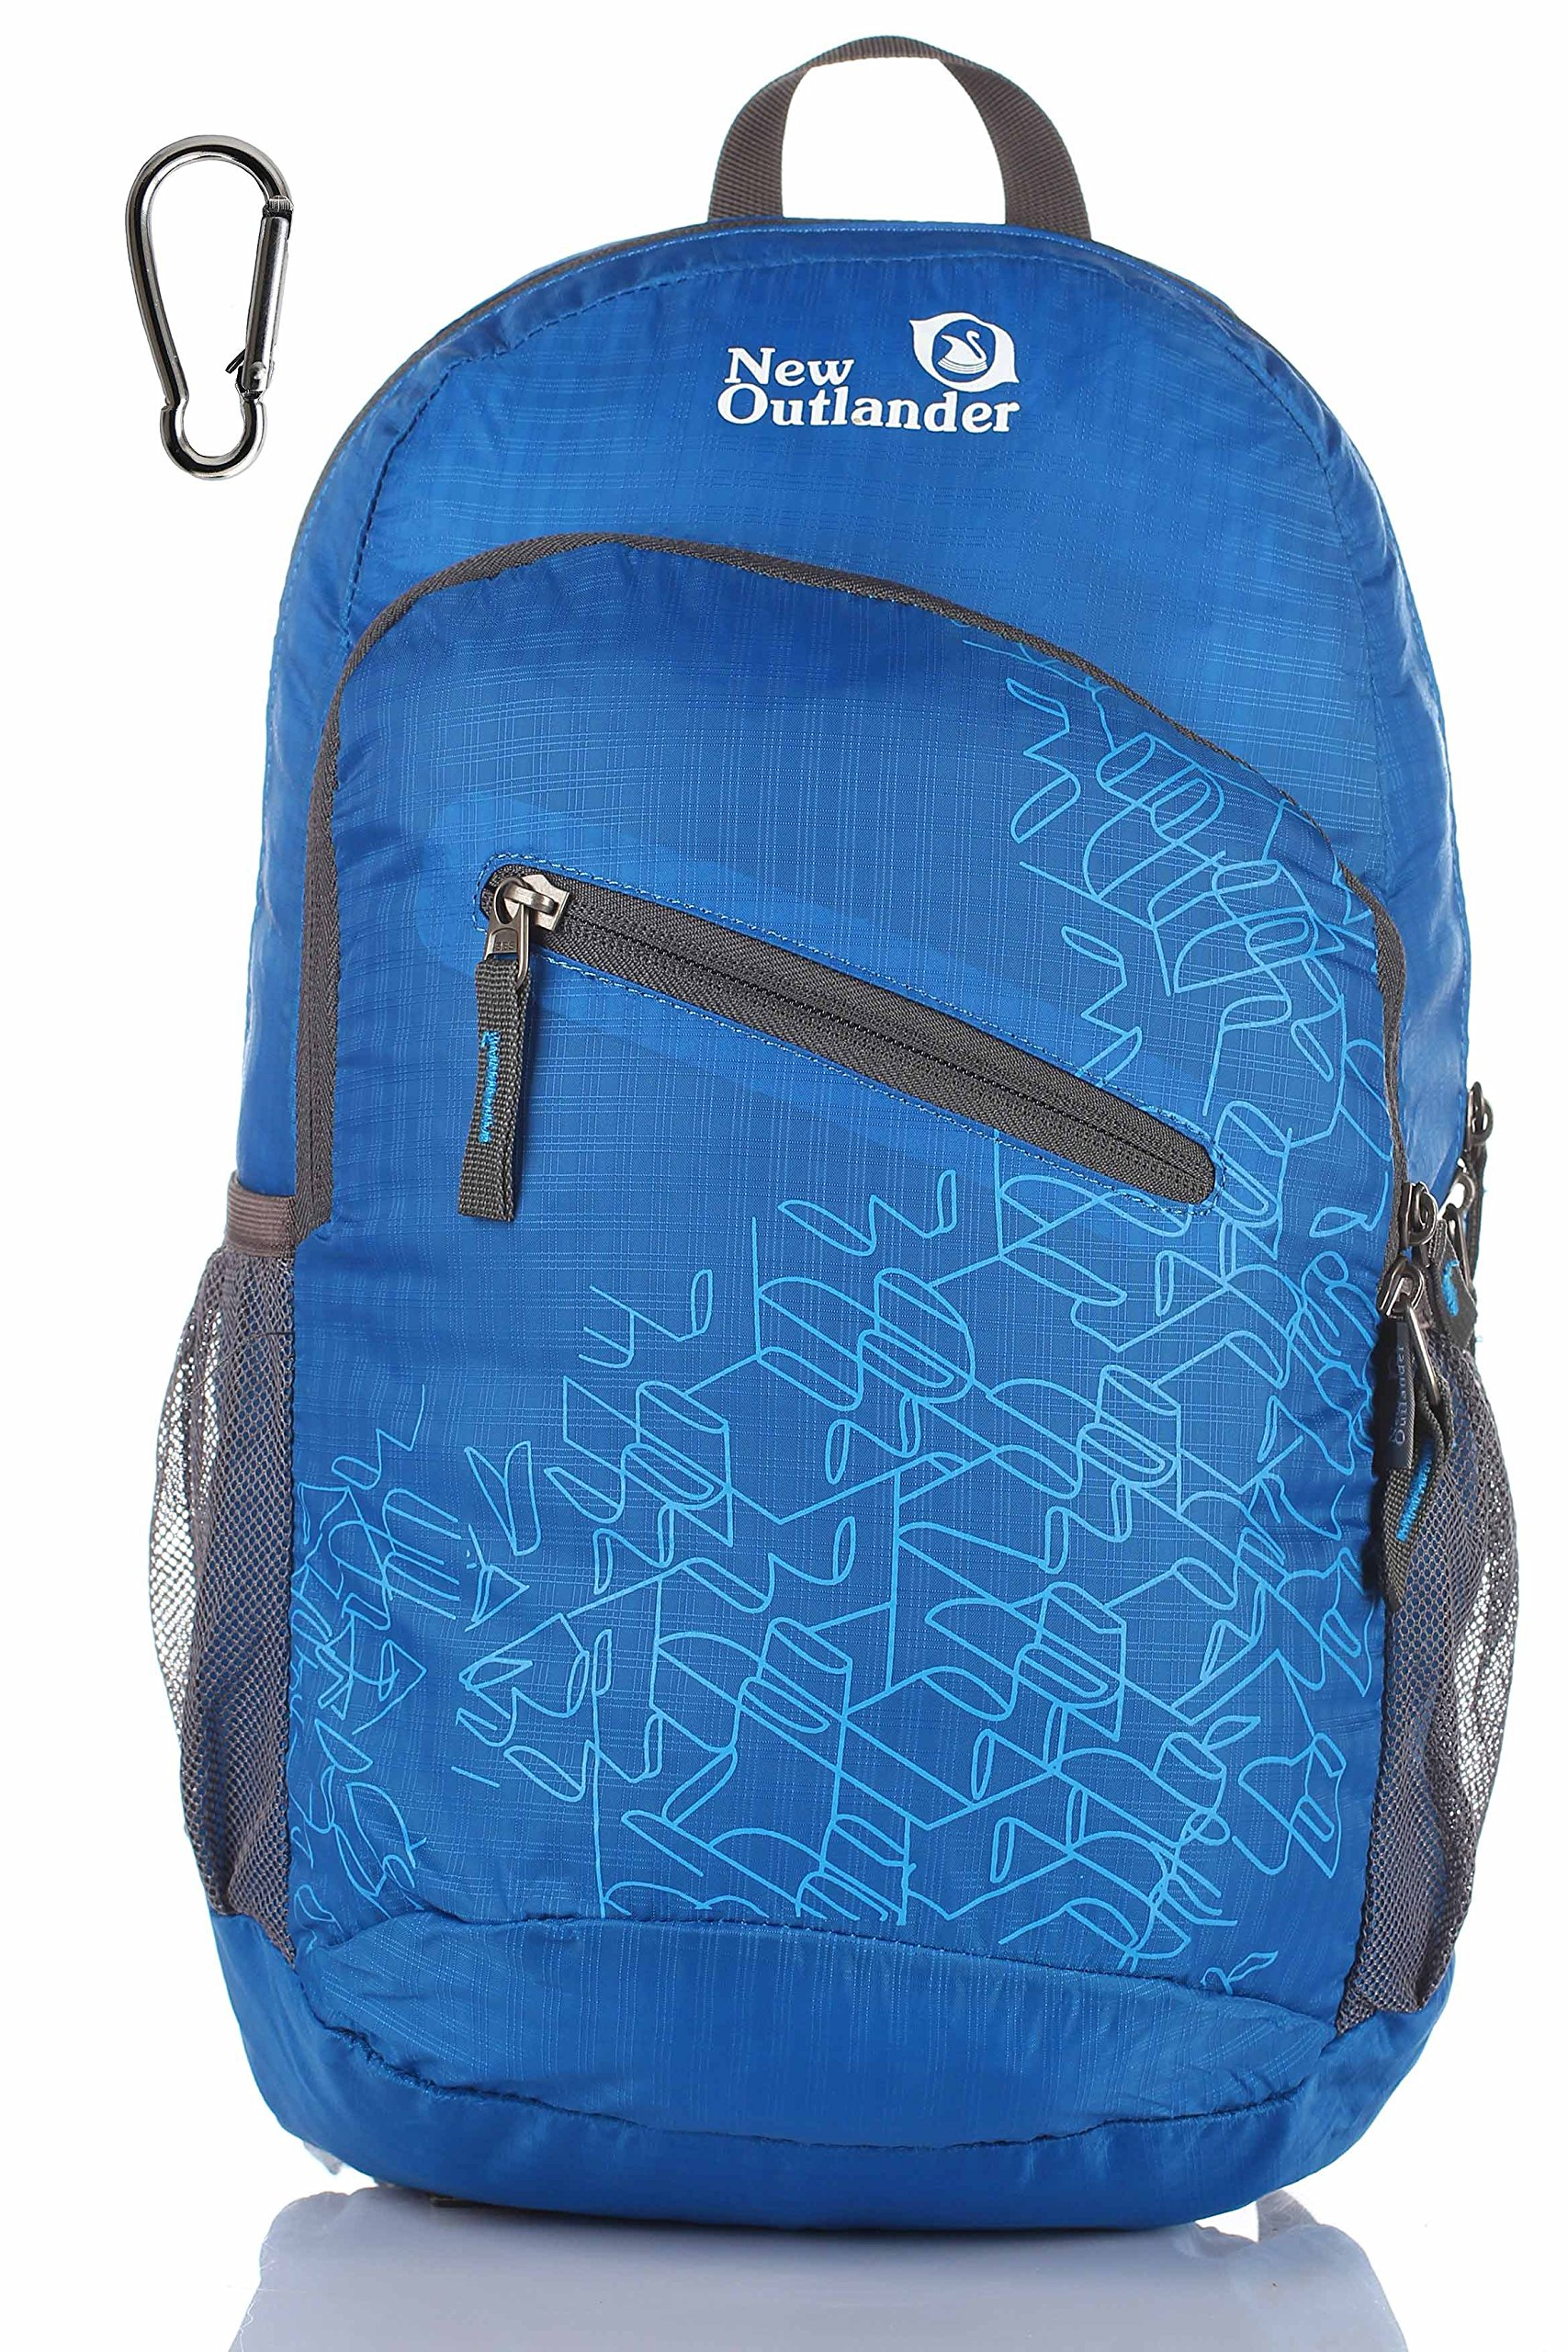 Outlander Ultra Lightweight Packable Water Resistant Travel Hiking Backpack  Daypack Handy Foldable Camping Outdoor Backpack product 622e6bdb1fce5